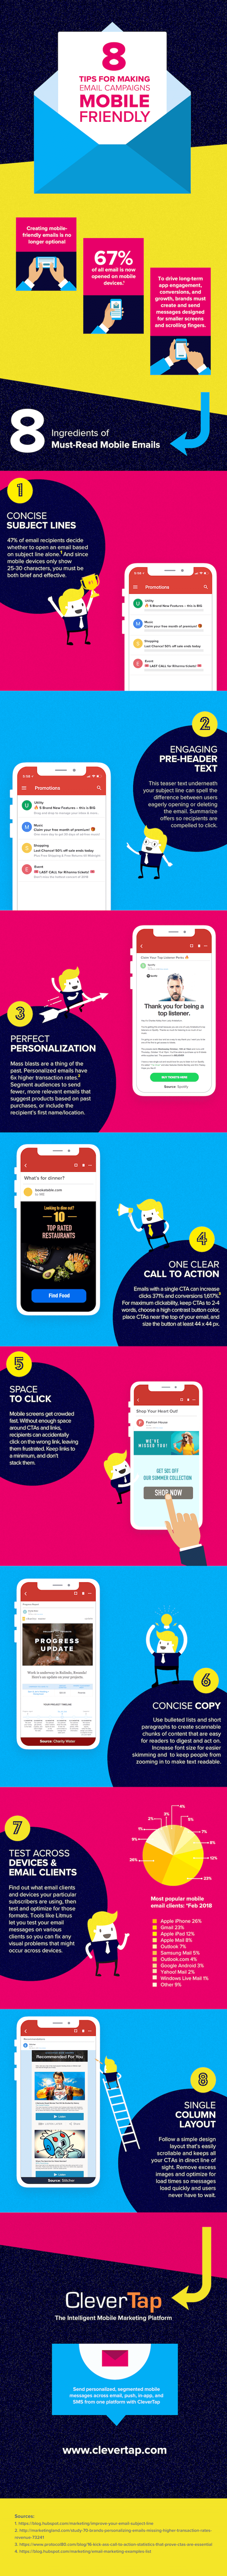 Infographic 8 Tips for Making Email Campaigns Mobile Friendly